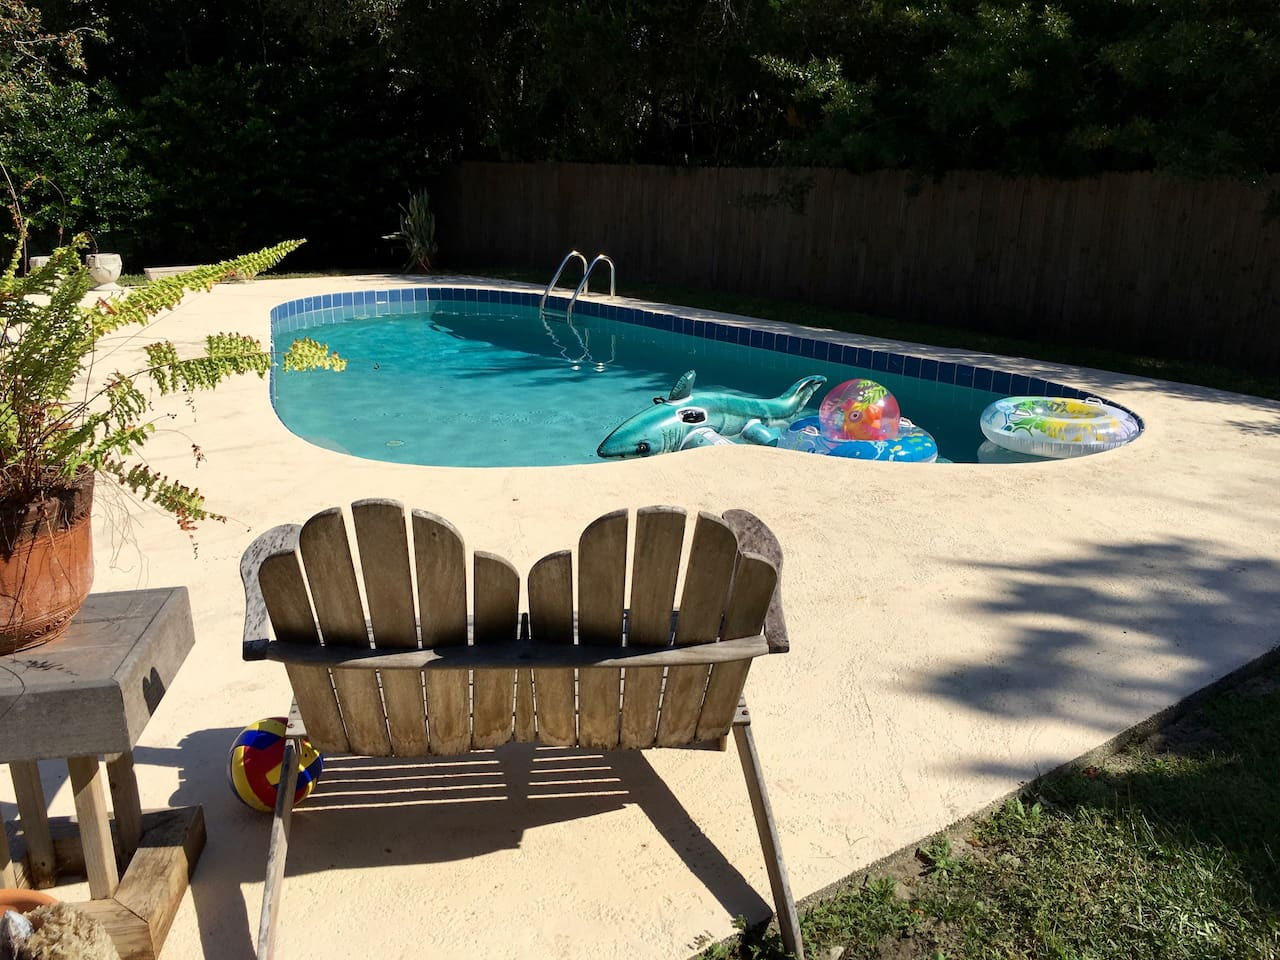 Backyard pool surrounded by privacy fence.